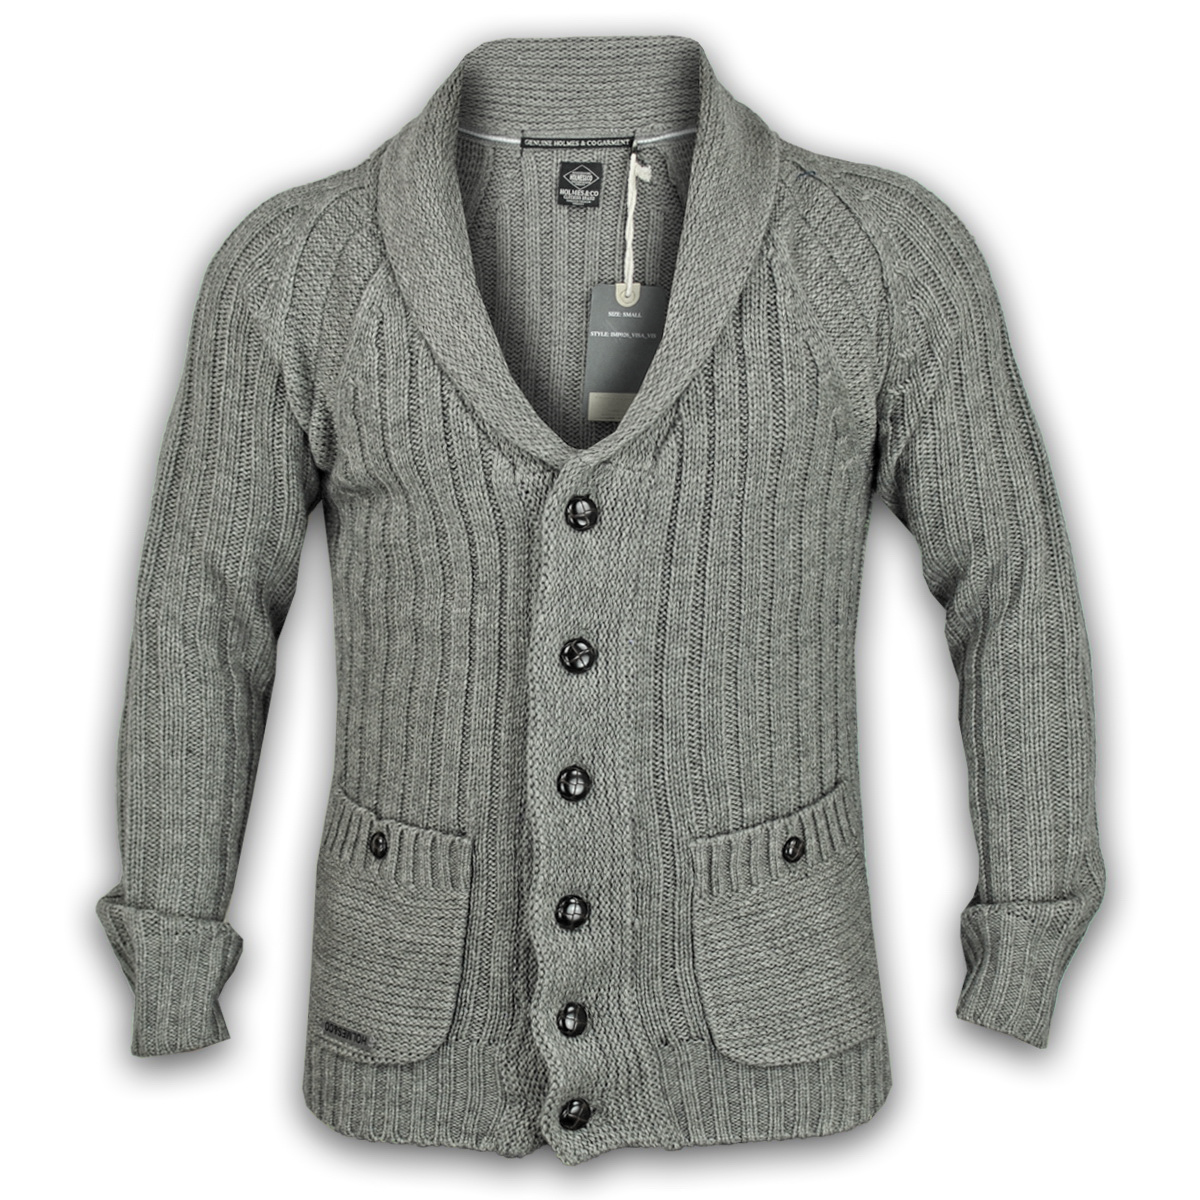 Mens Knitwear Top Cardigan Jumper Wool Mix Sweater Ambrose Button ...